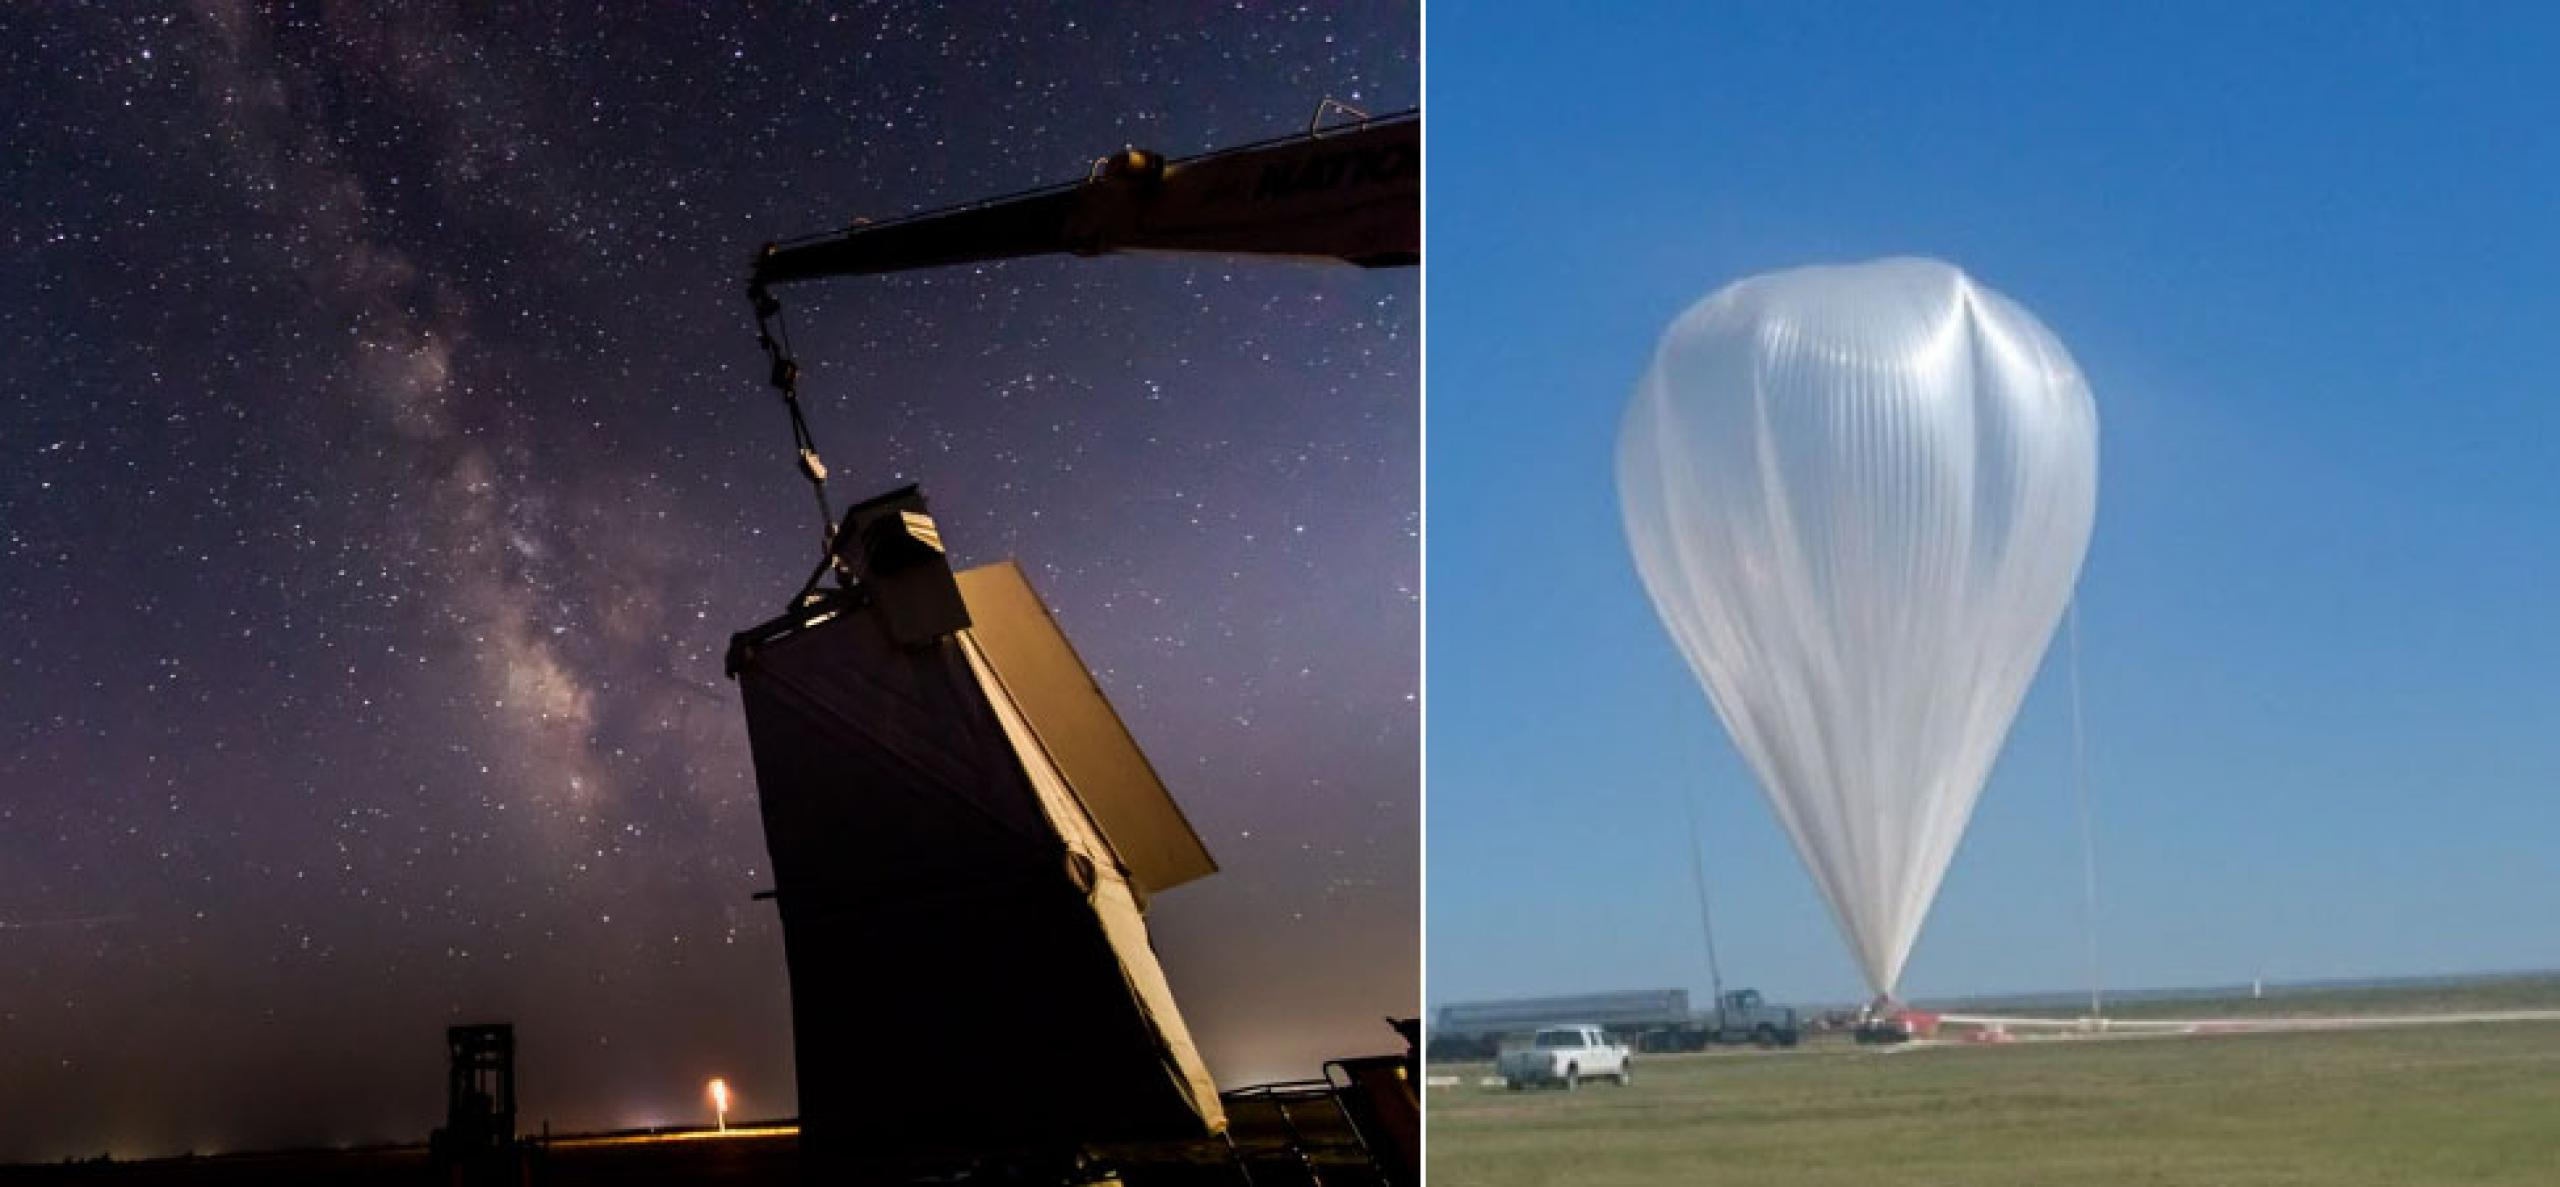 Photo of the milky way galaxy on the left and large white weather balloon on the right